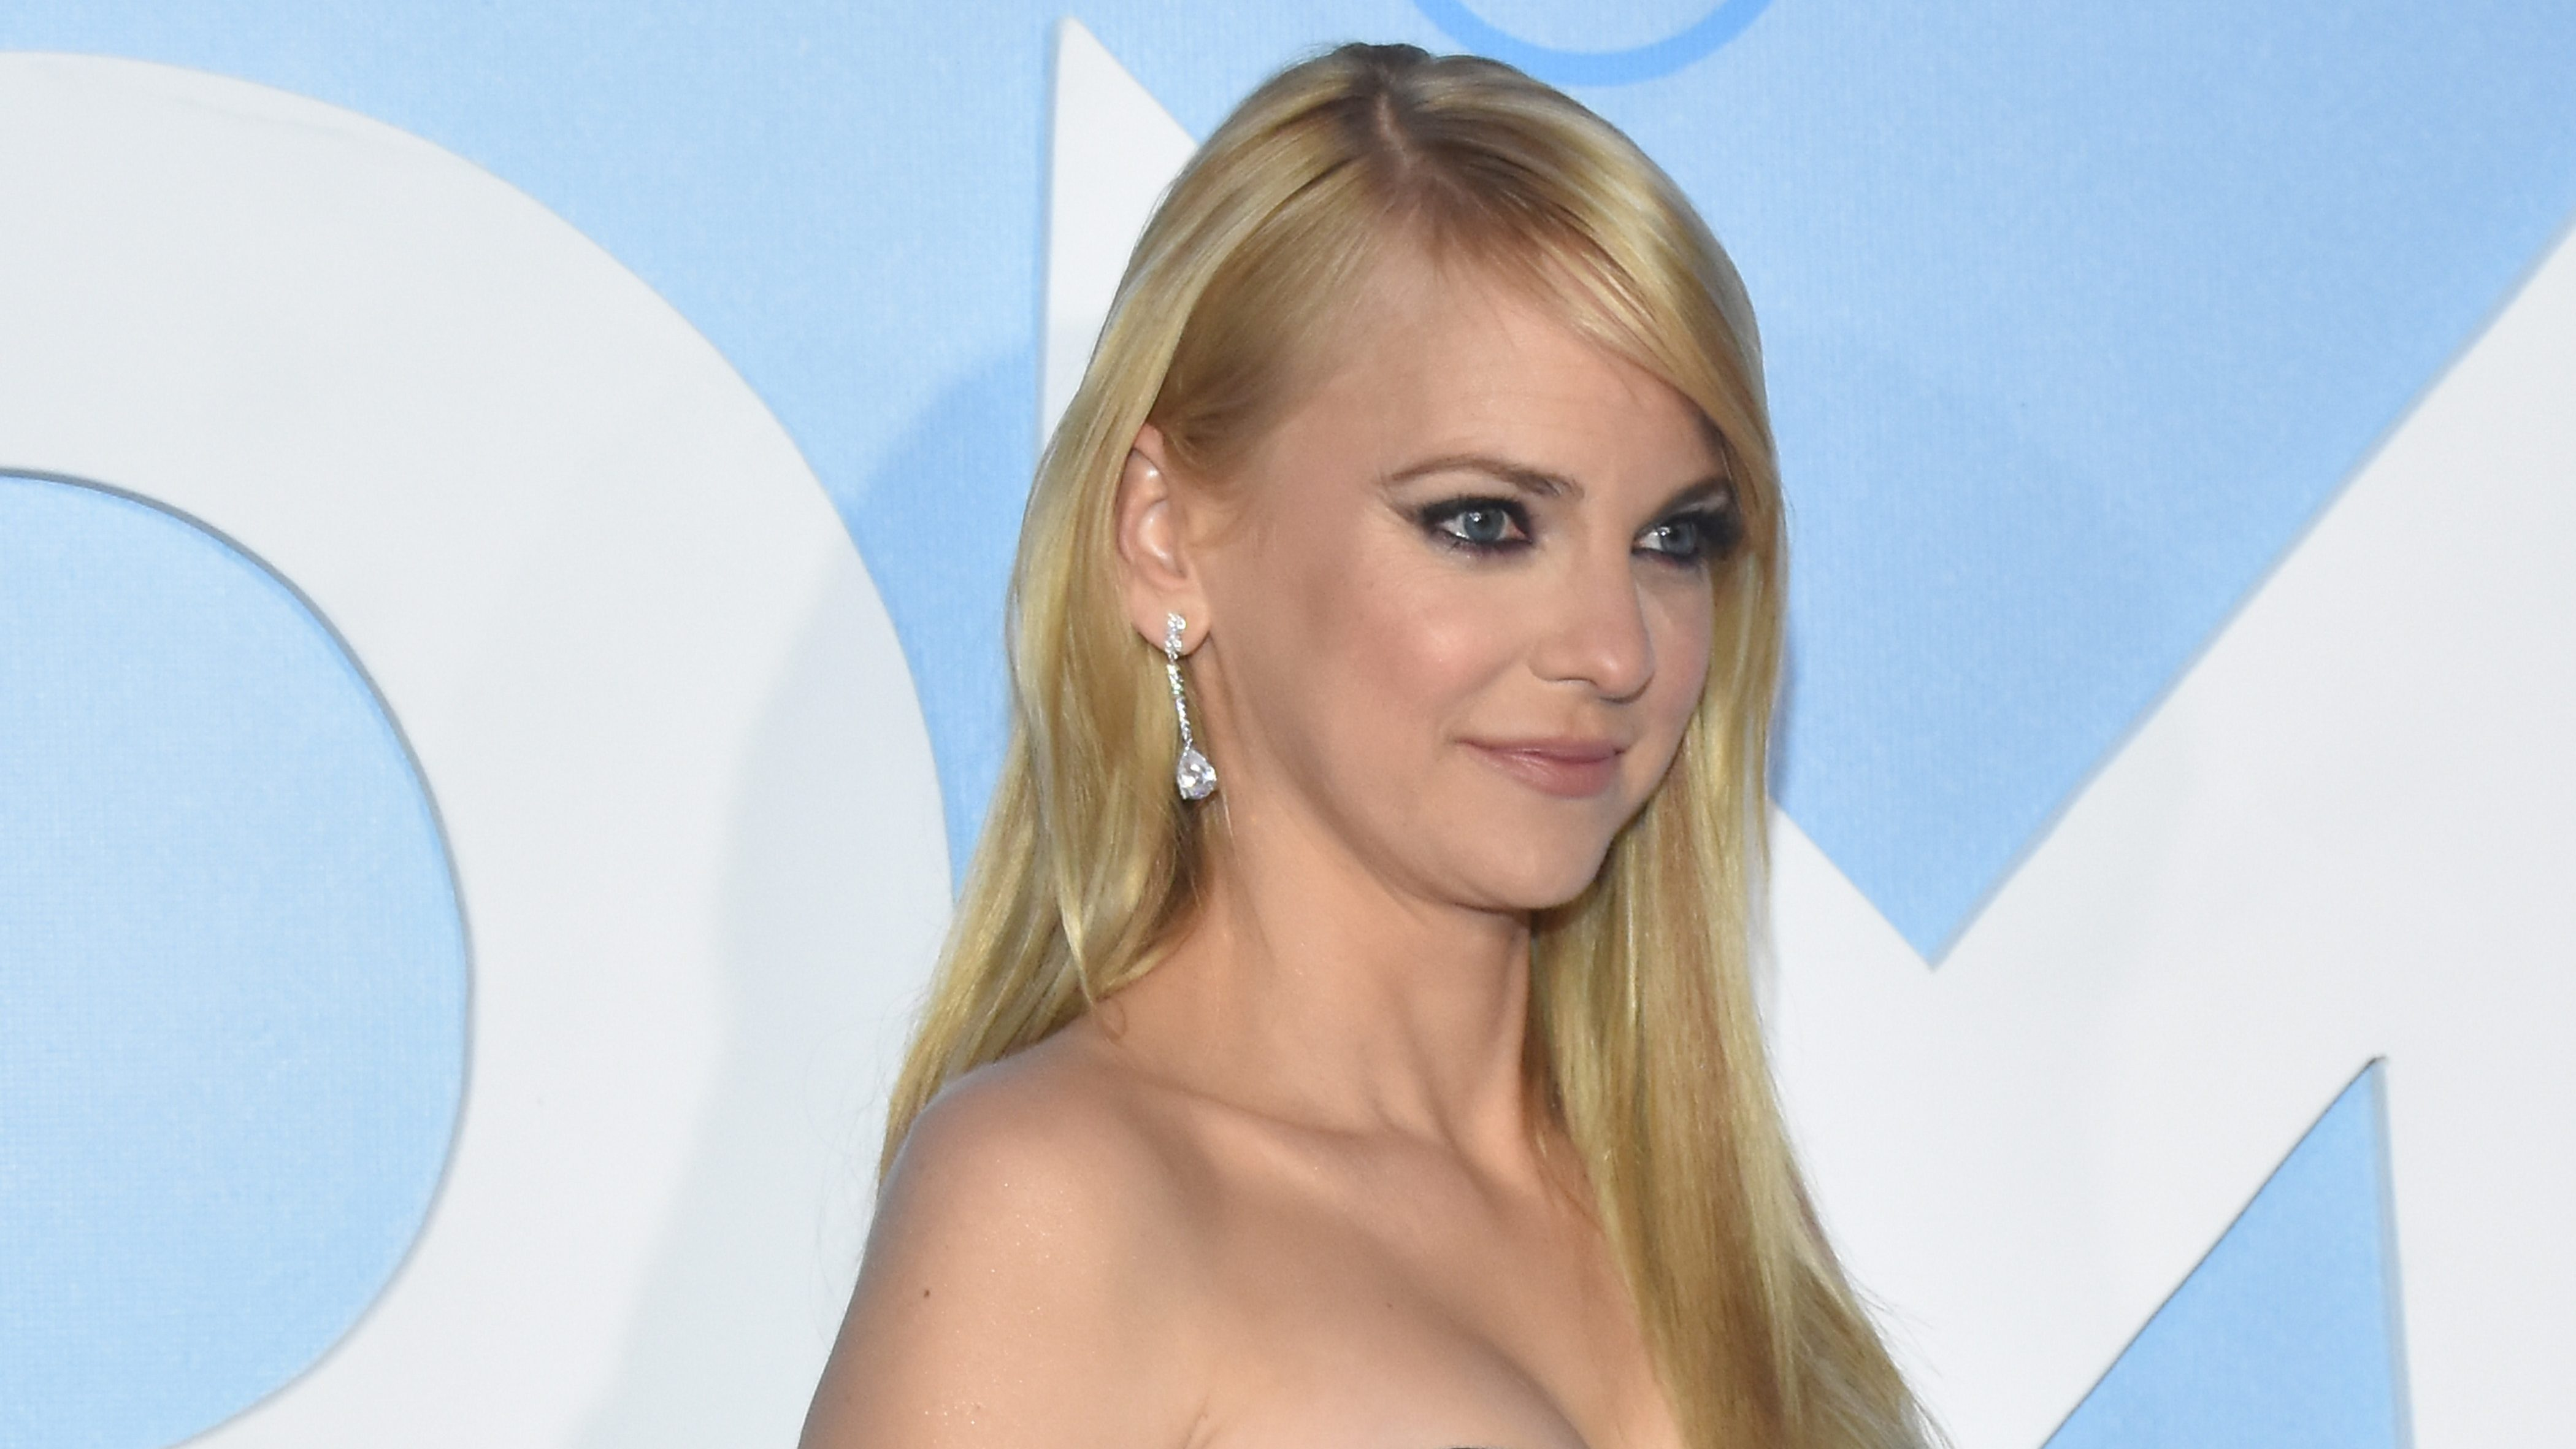 Anna Faris Experiences Mom Guilt: 'I Know Parents Feel This'